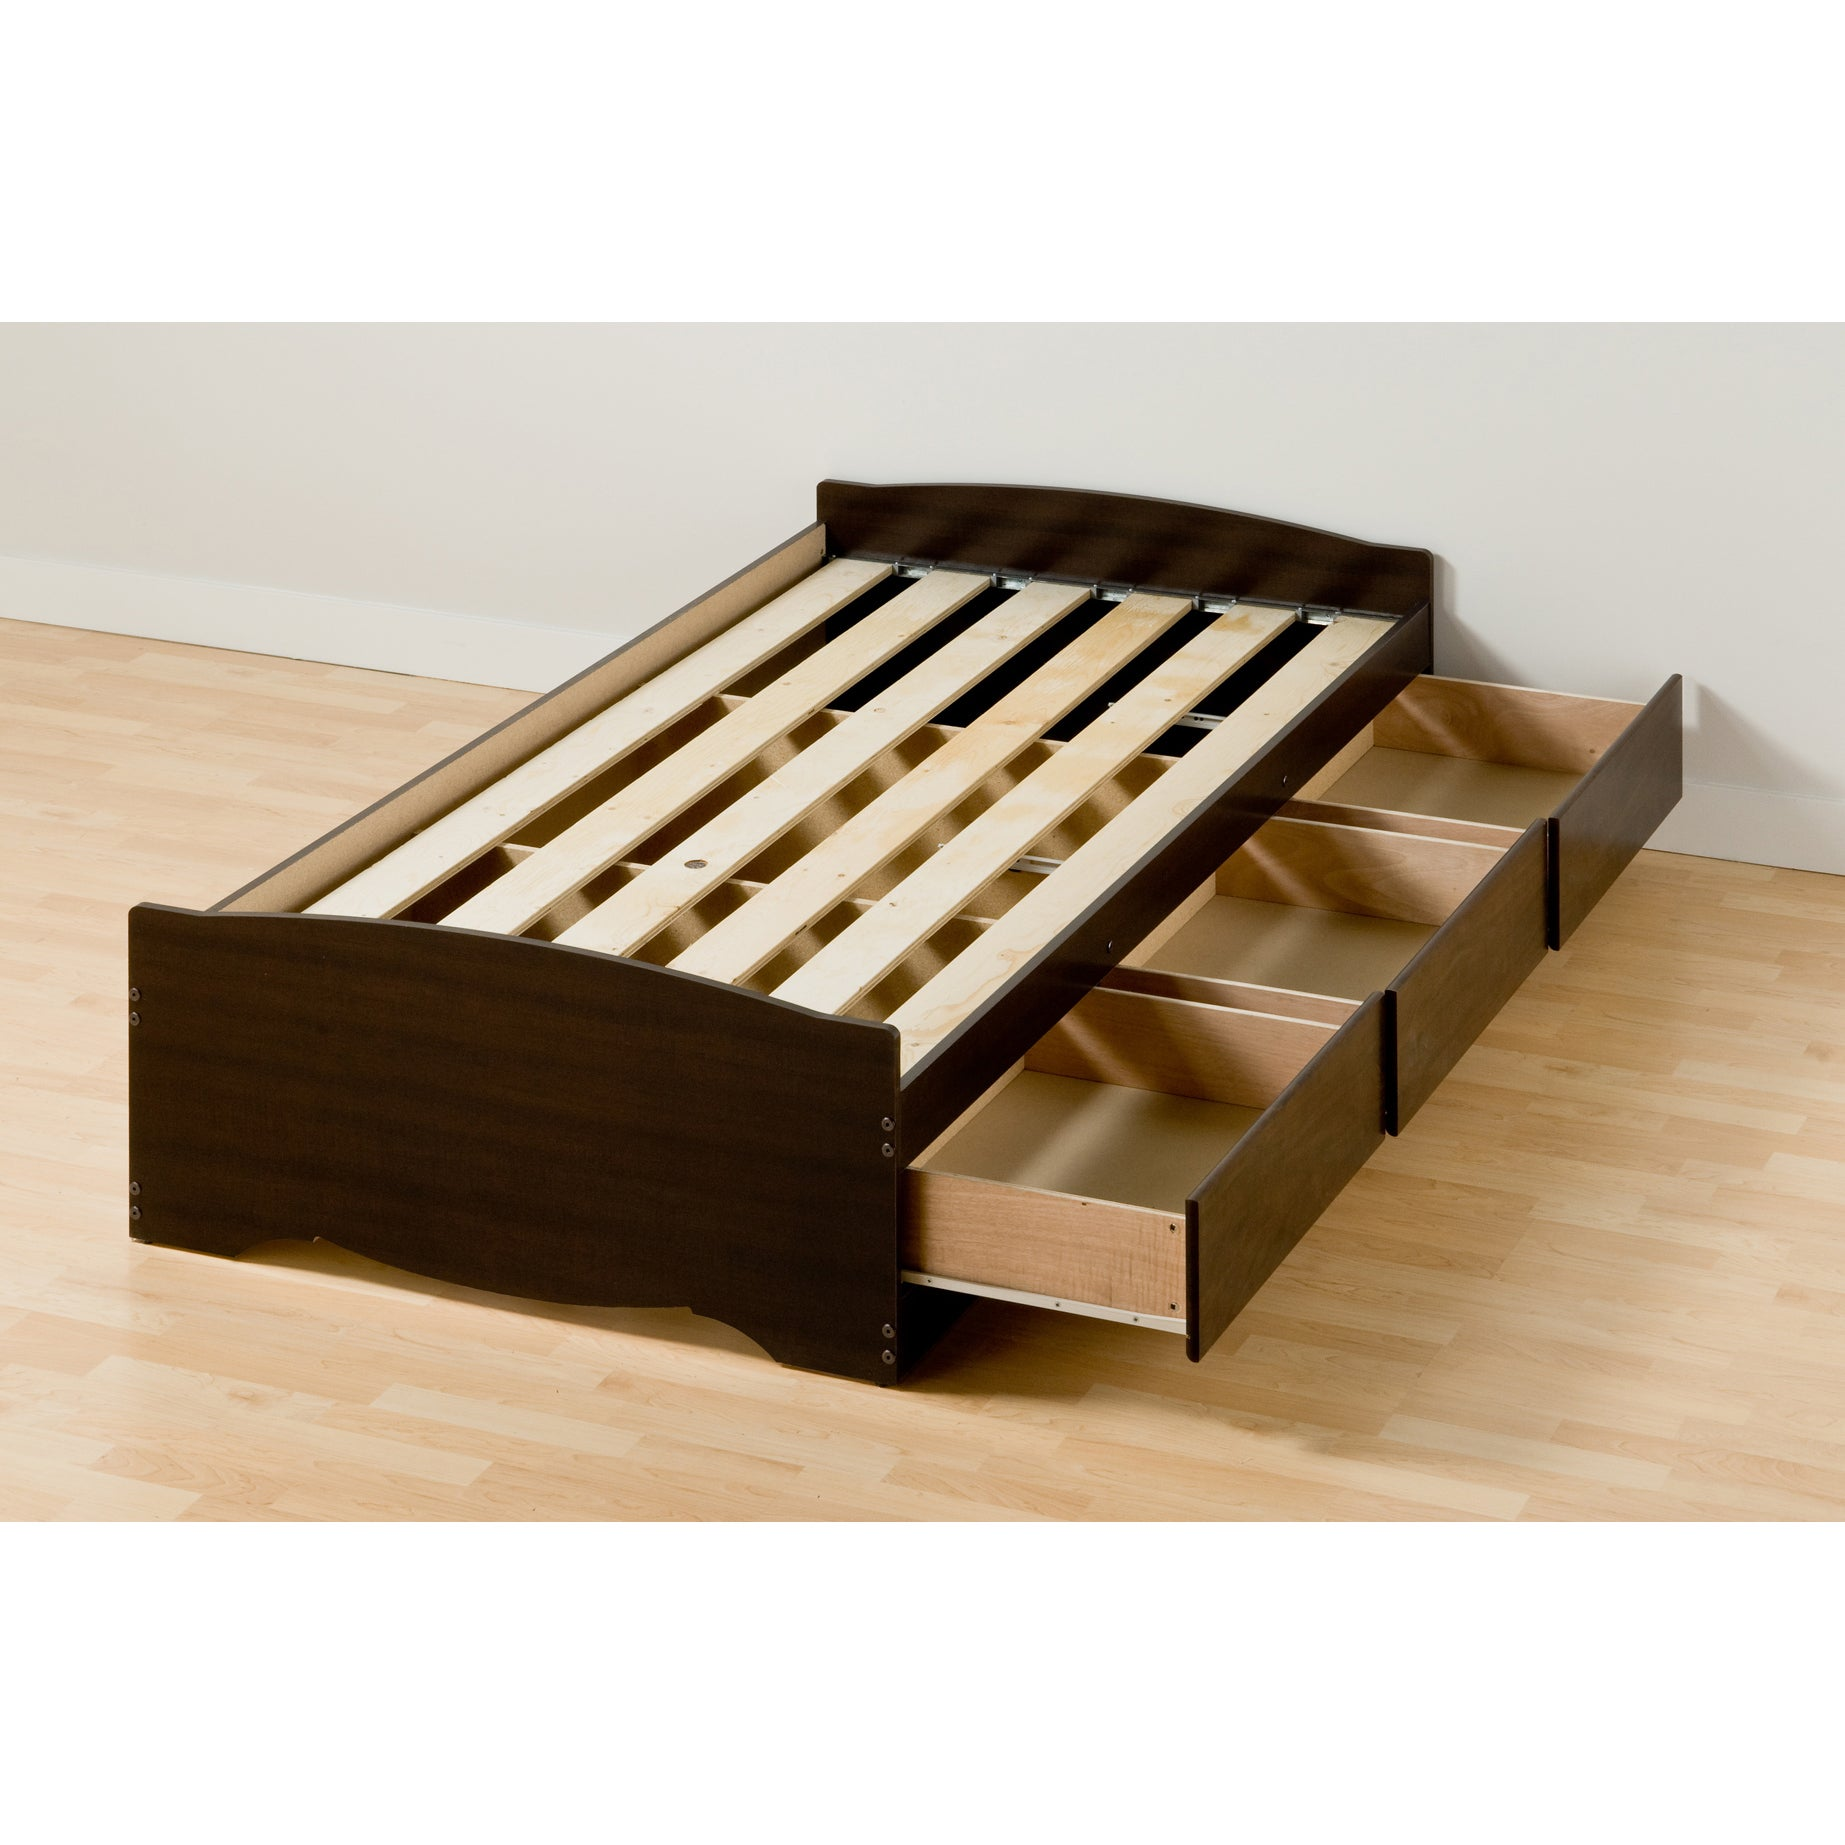 Shop Espresso Twin XL Mateu0027s Platform Storage Bed with 3 Drawers - Free Shipping Today - Overstock.com - 3072580  sc 1 st  Overstock.com : twin xl storage bed  - Aquiesqueretaro.Com